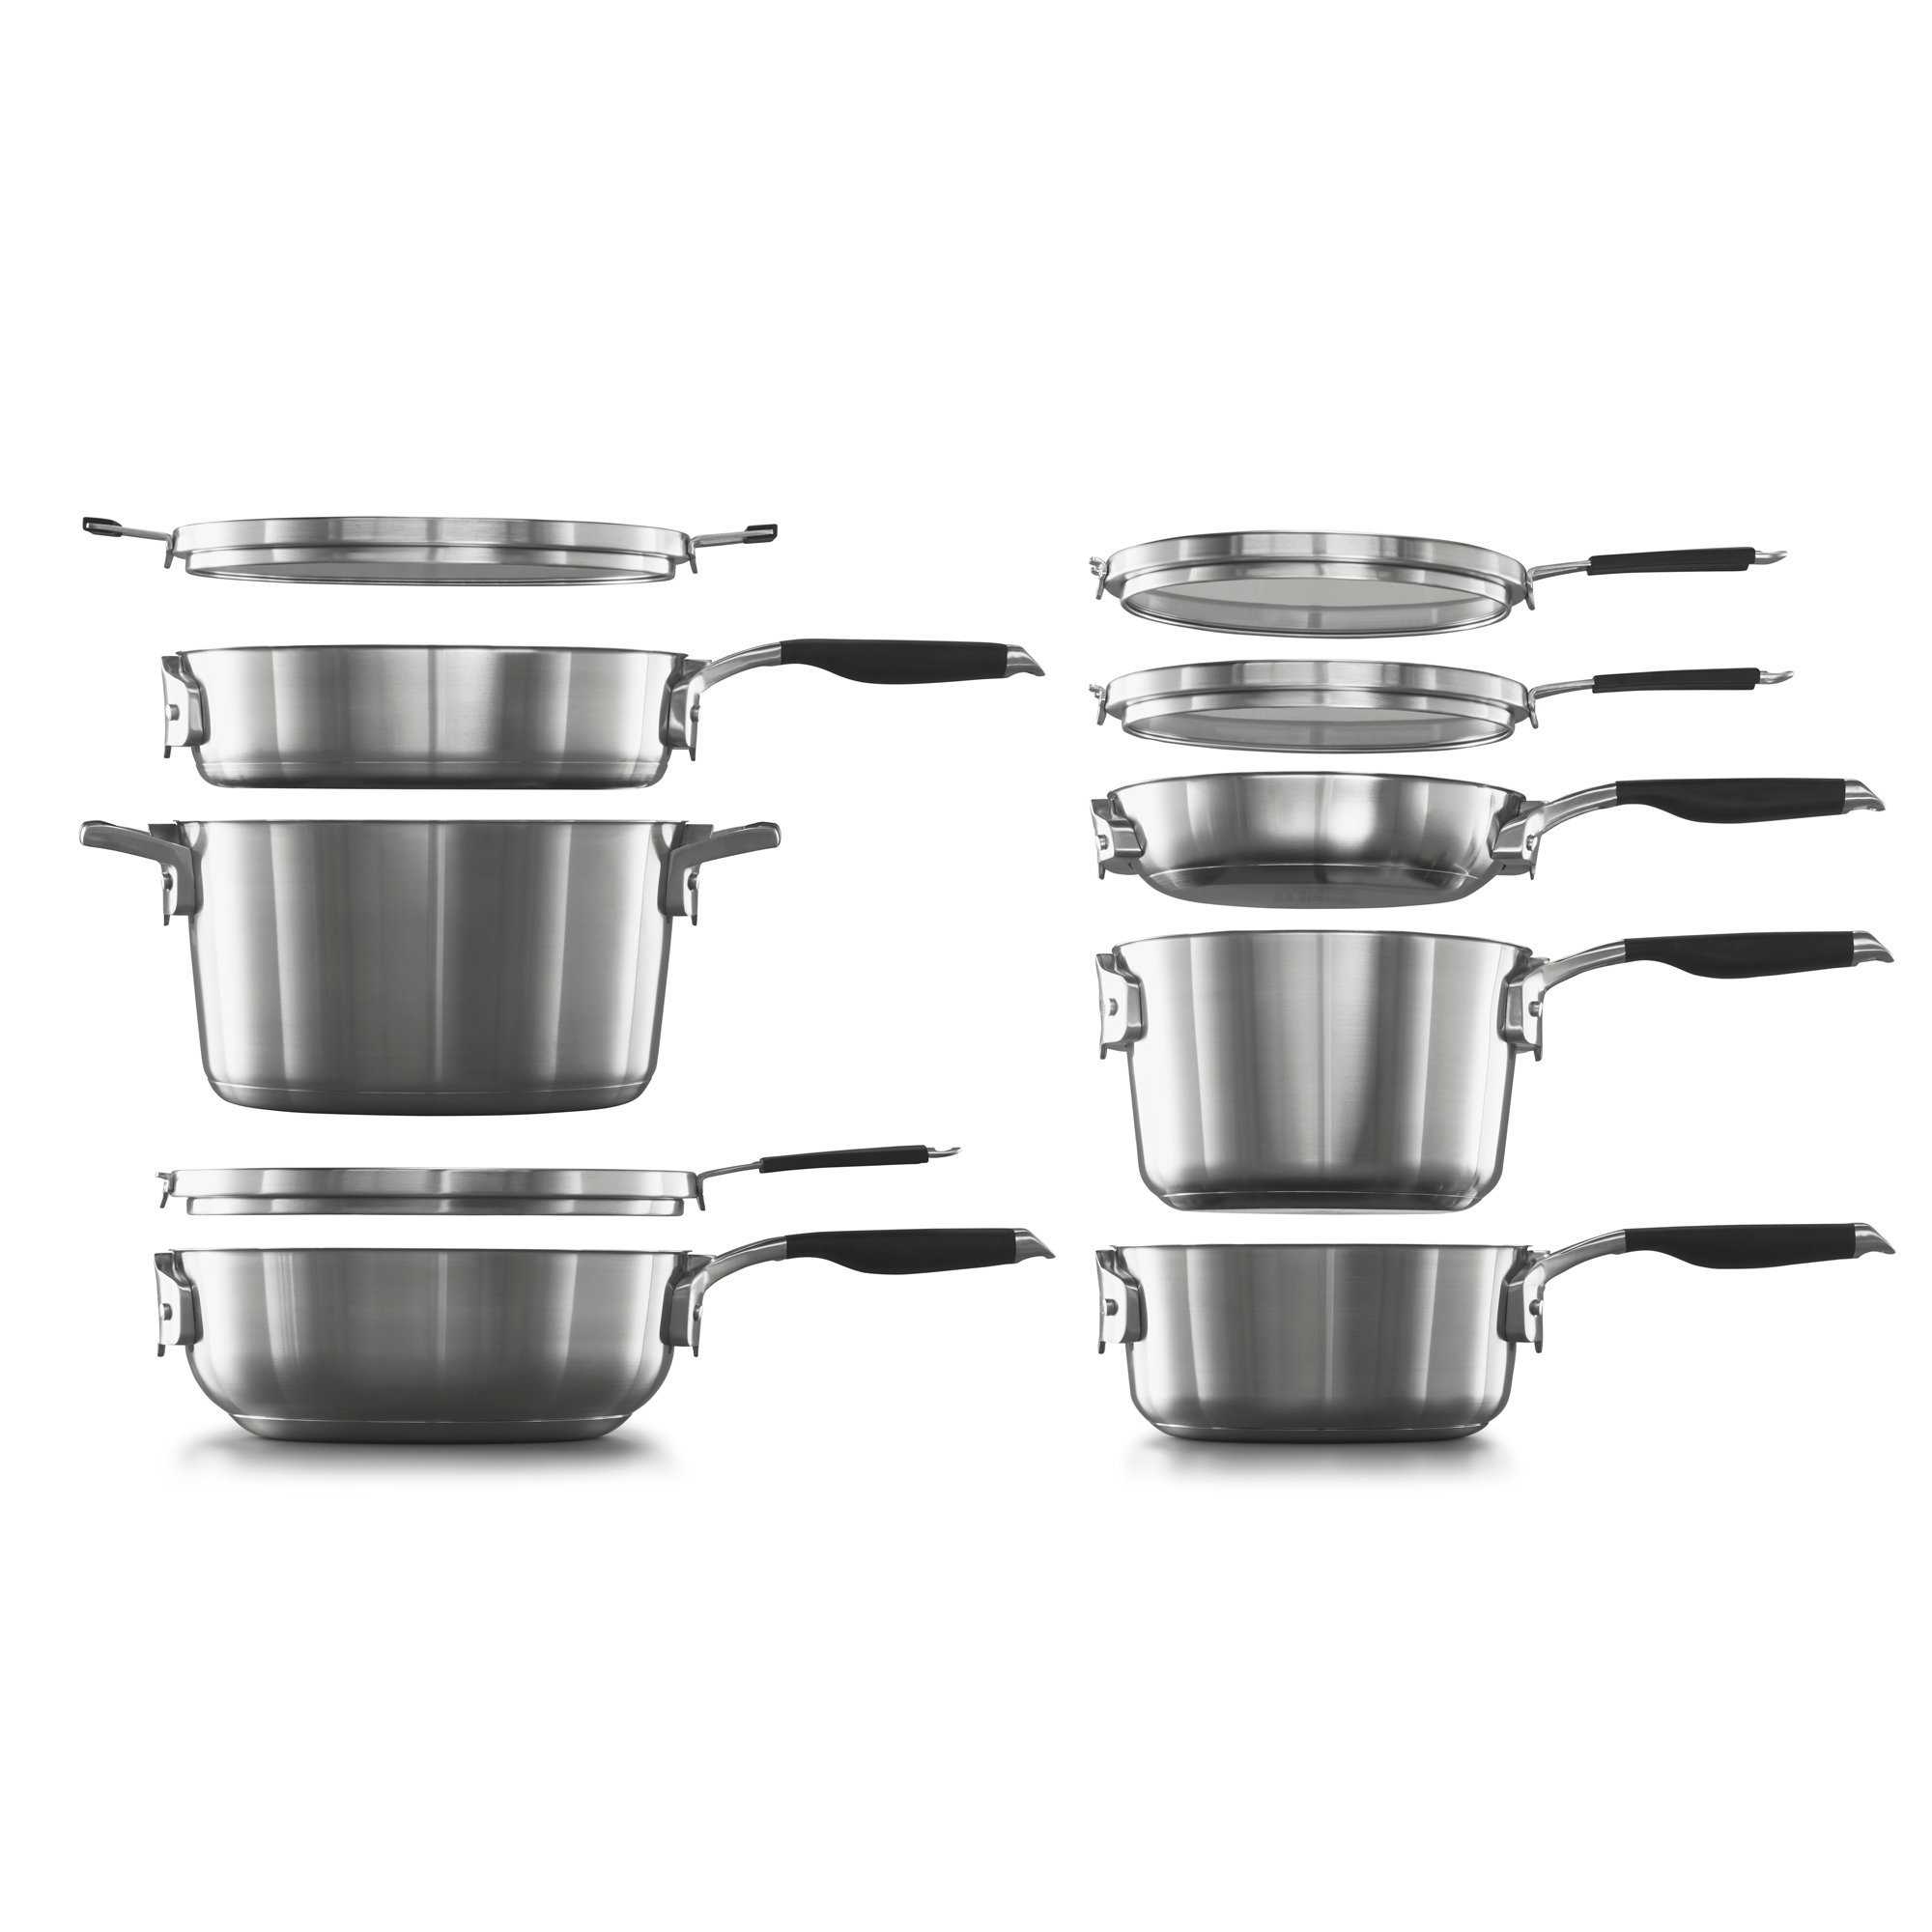 Select By Calphalon? Space Saving 10-Piece Stainless Steel Cookware Set